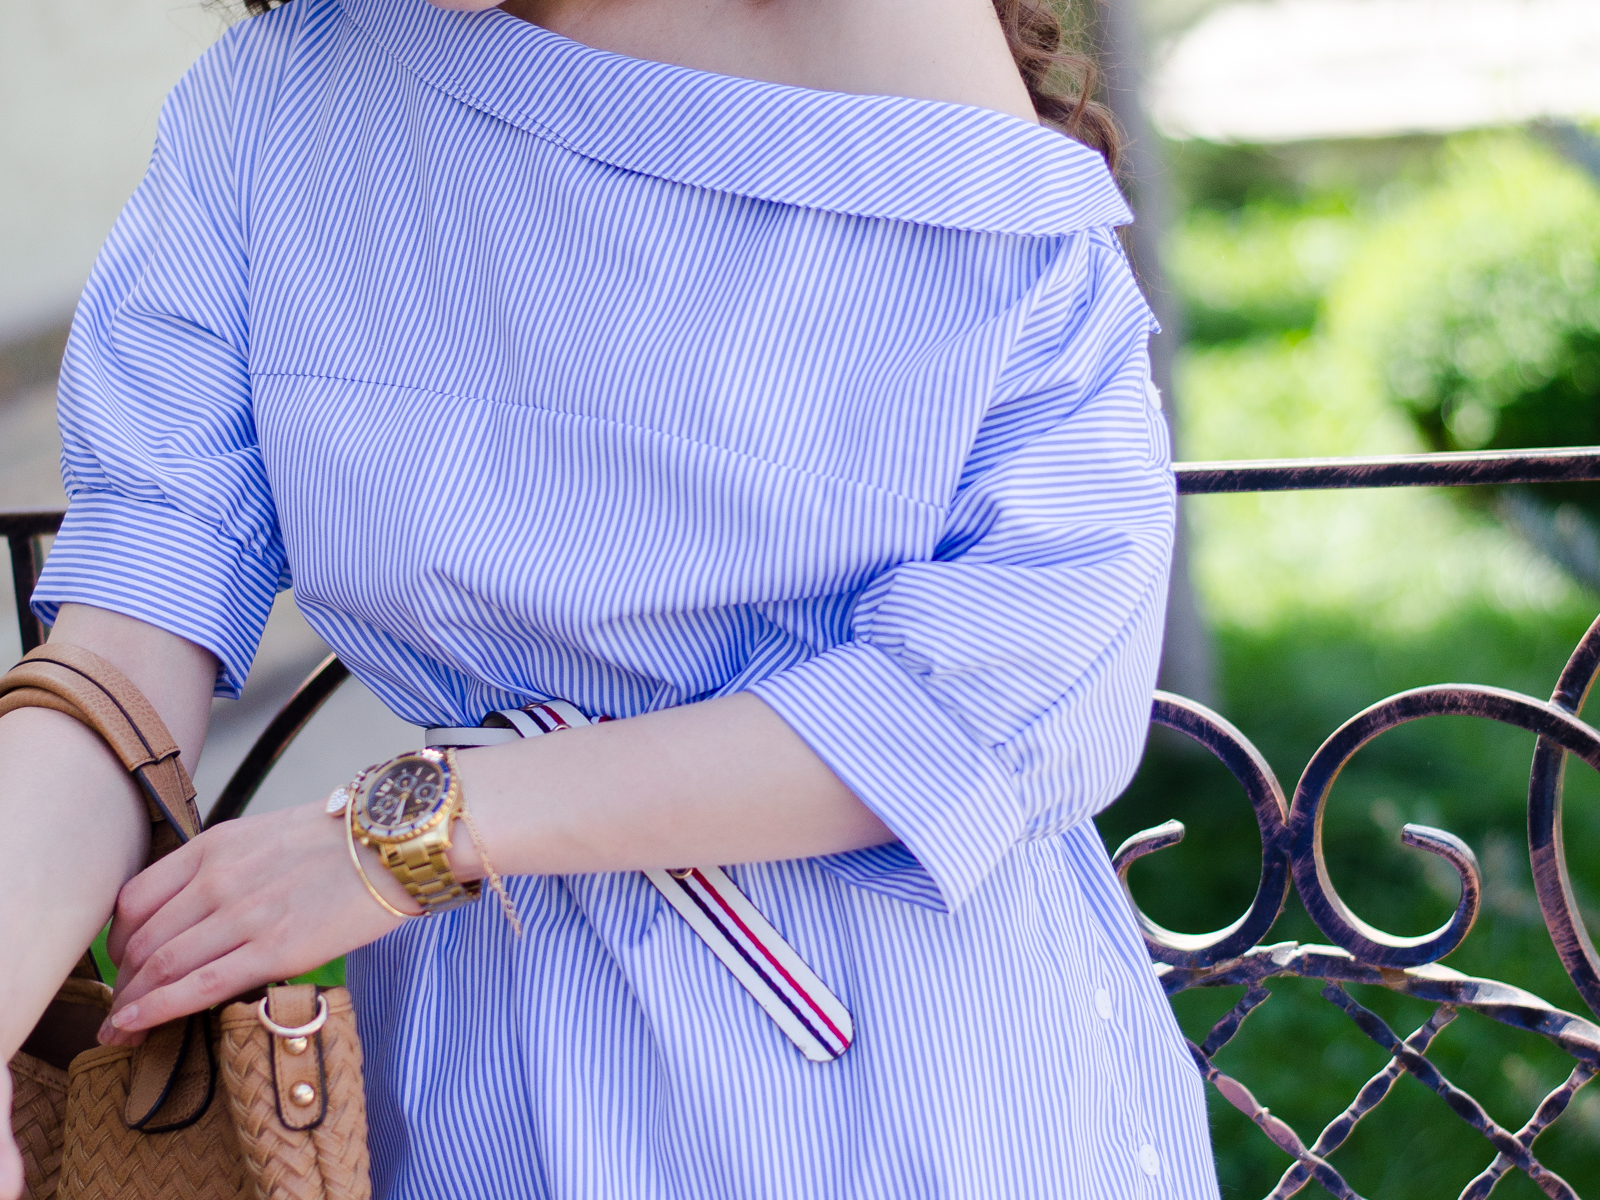 fashion blogger diyorasnotes diyora beta blue dress straw hat asos bag spring outfit oversized sunglasses